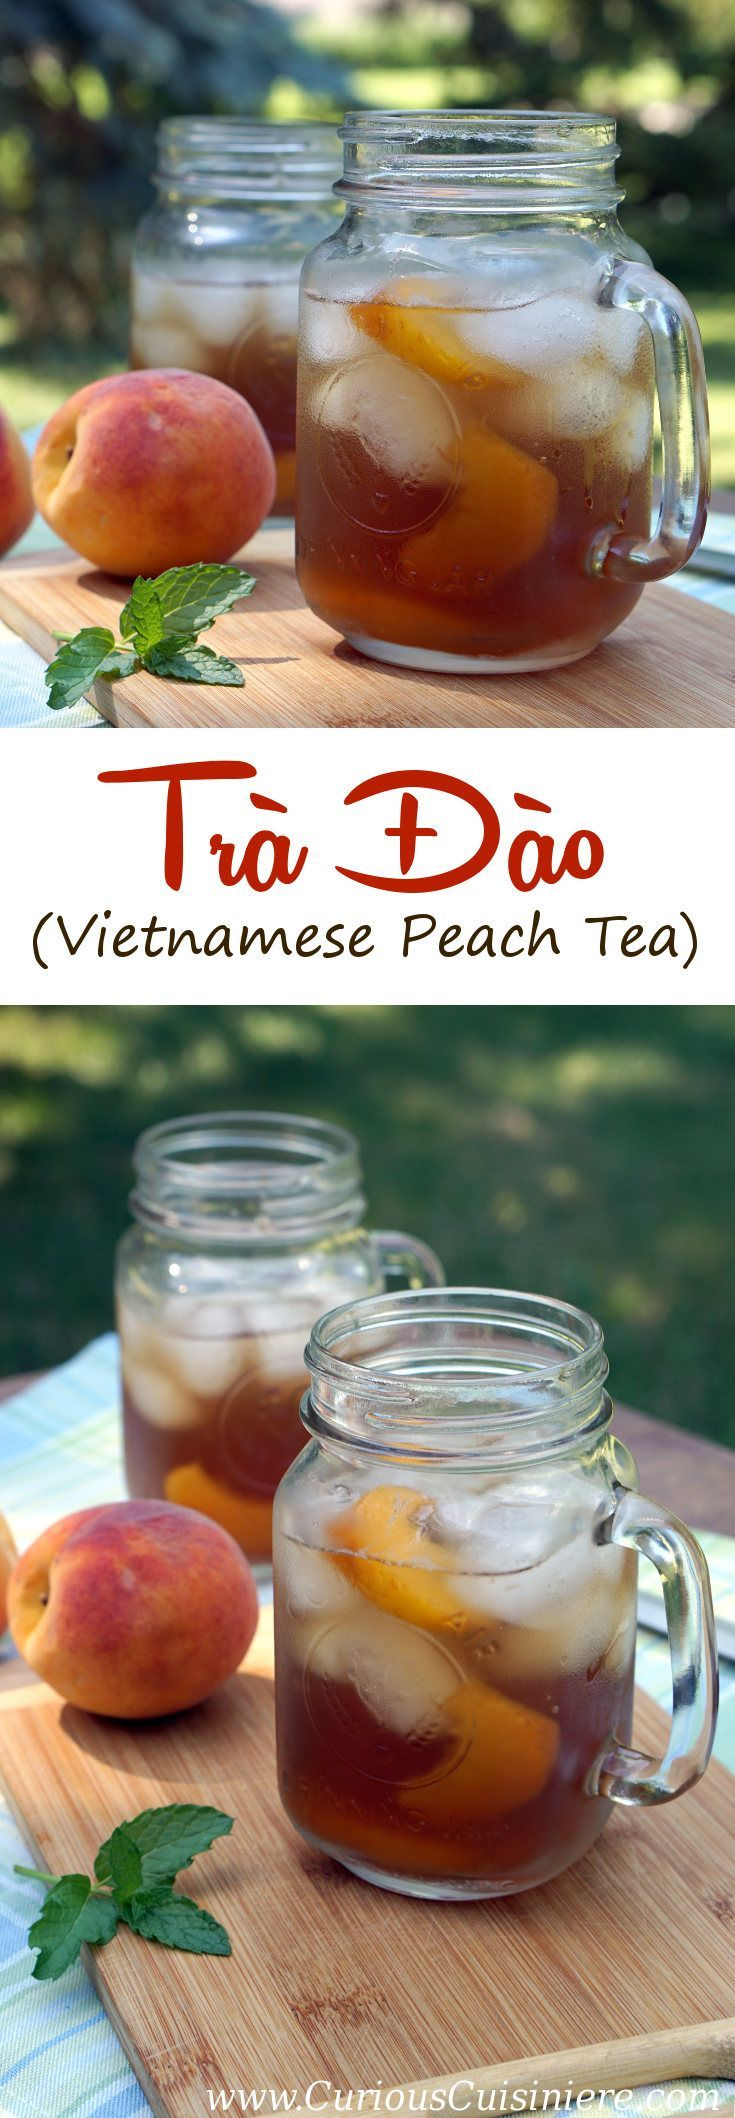 This lightly sweet Vietnamese Peach Tea is made with real peaches for a perfectly refreshing summer drink! #SundaySupper   www.CuriousCuisiniere.com